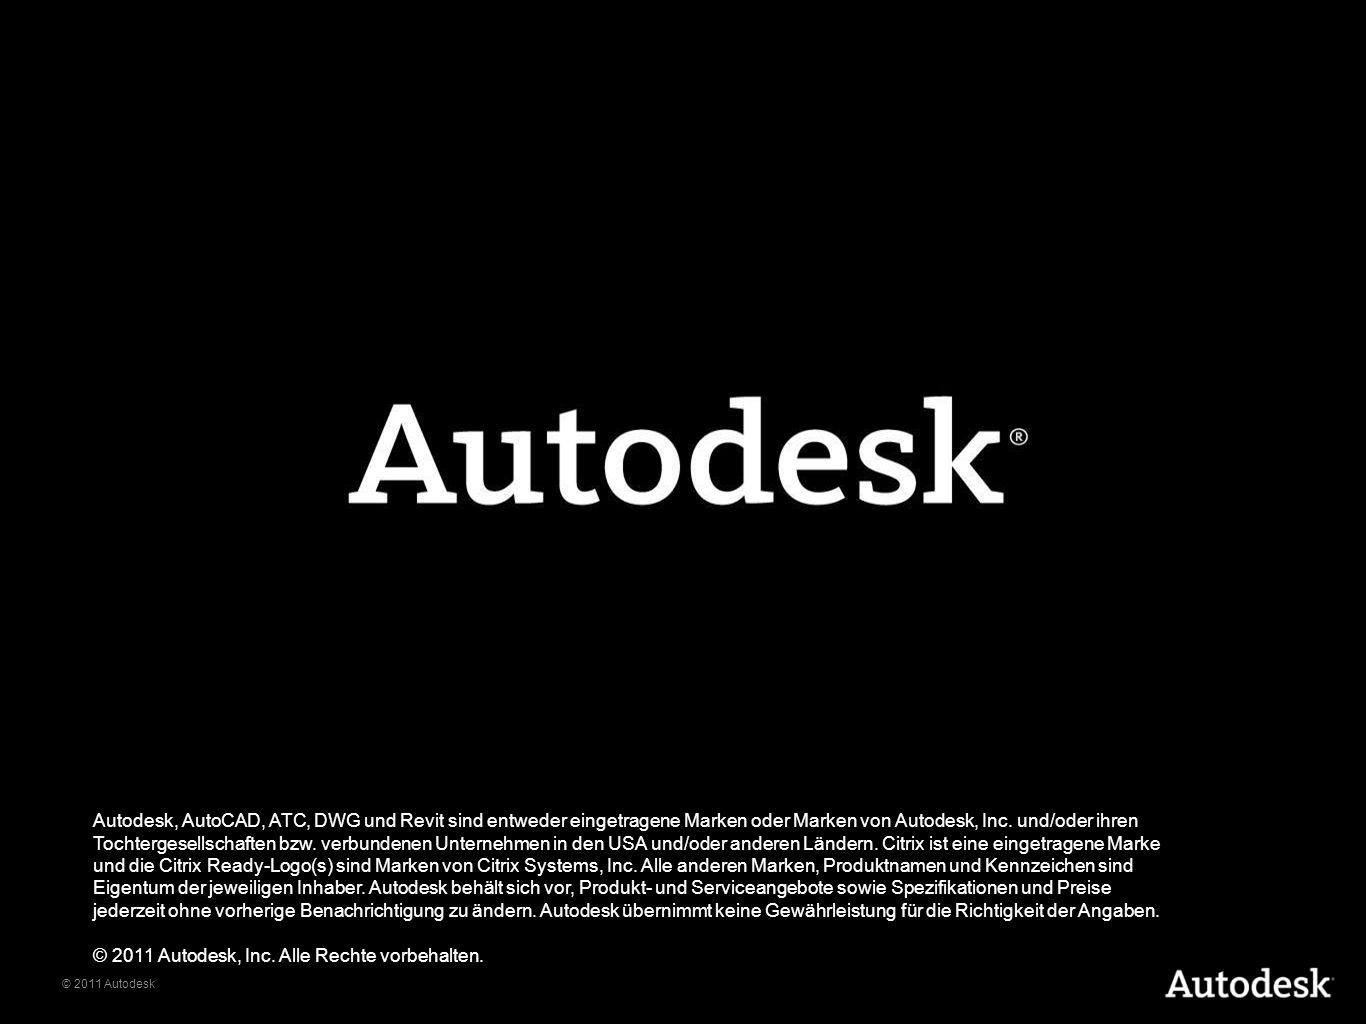 Autodesk, AutoCAD, DWG, and Revit are registered trademarks or trademarks of Autodesk, Inc., and/or its subsidiaries and/or affiliates in the USA and/or other countries. All other brand names, product names, or trademarks belong to their respective holders. Autodesk reserves the right to alter product and services offerings, and specifications and pricing at any time without notice, and is not responsible for typographical or graphical errors that may appear in this document.